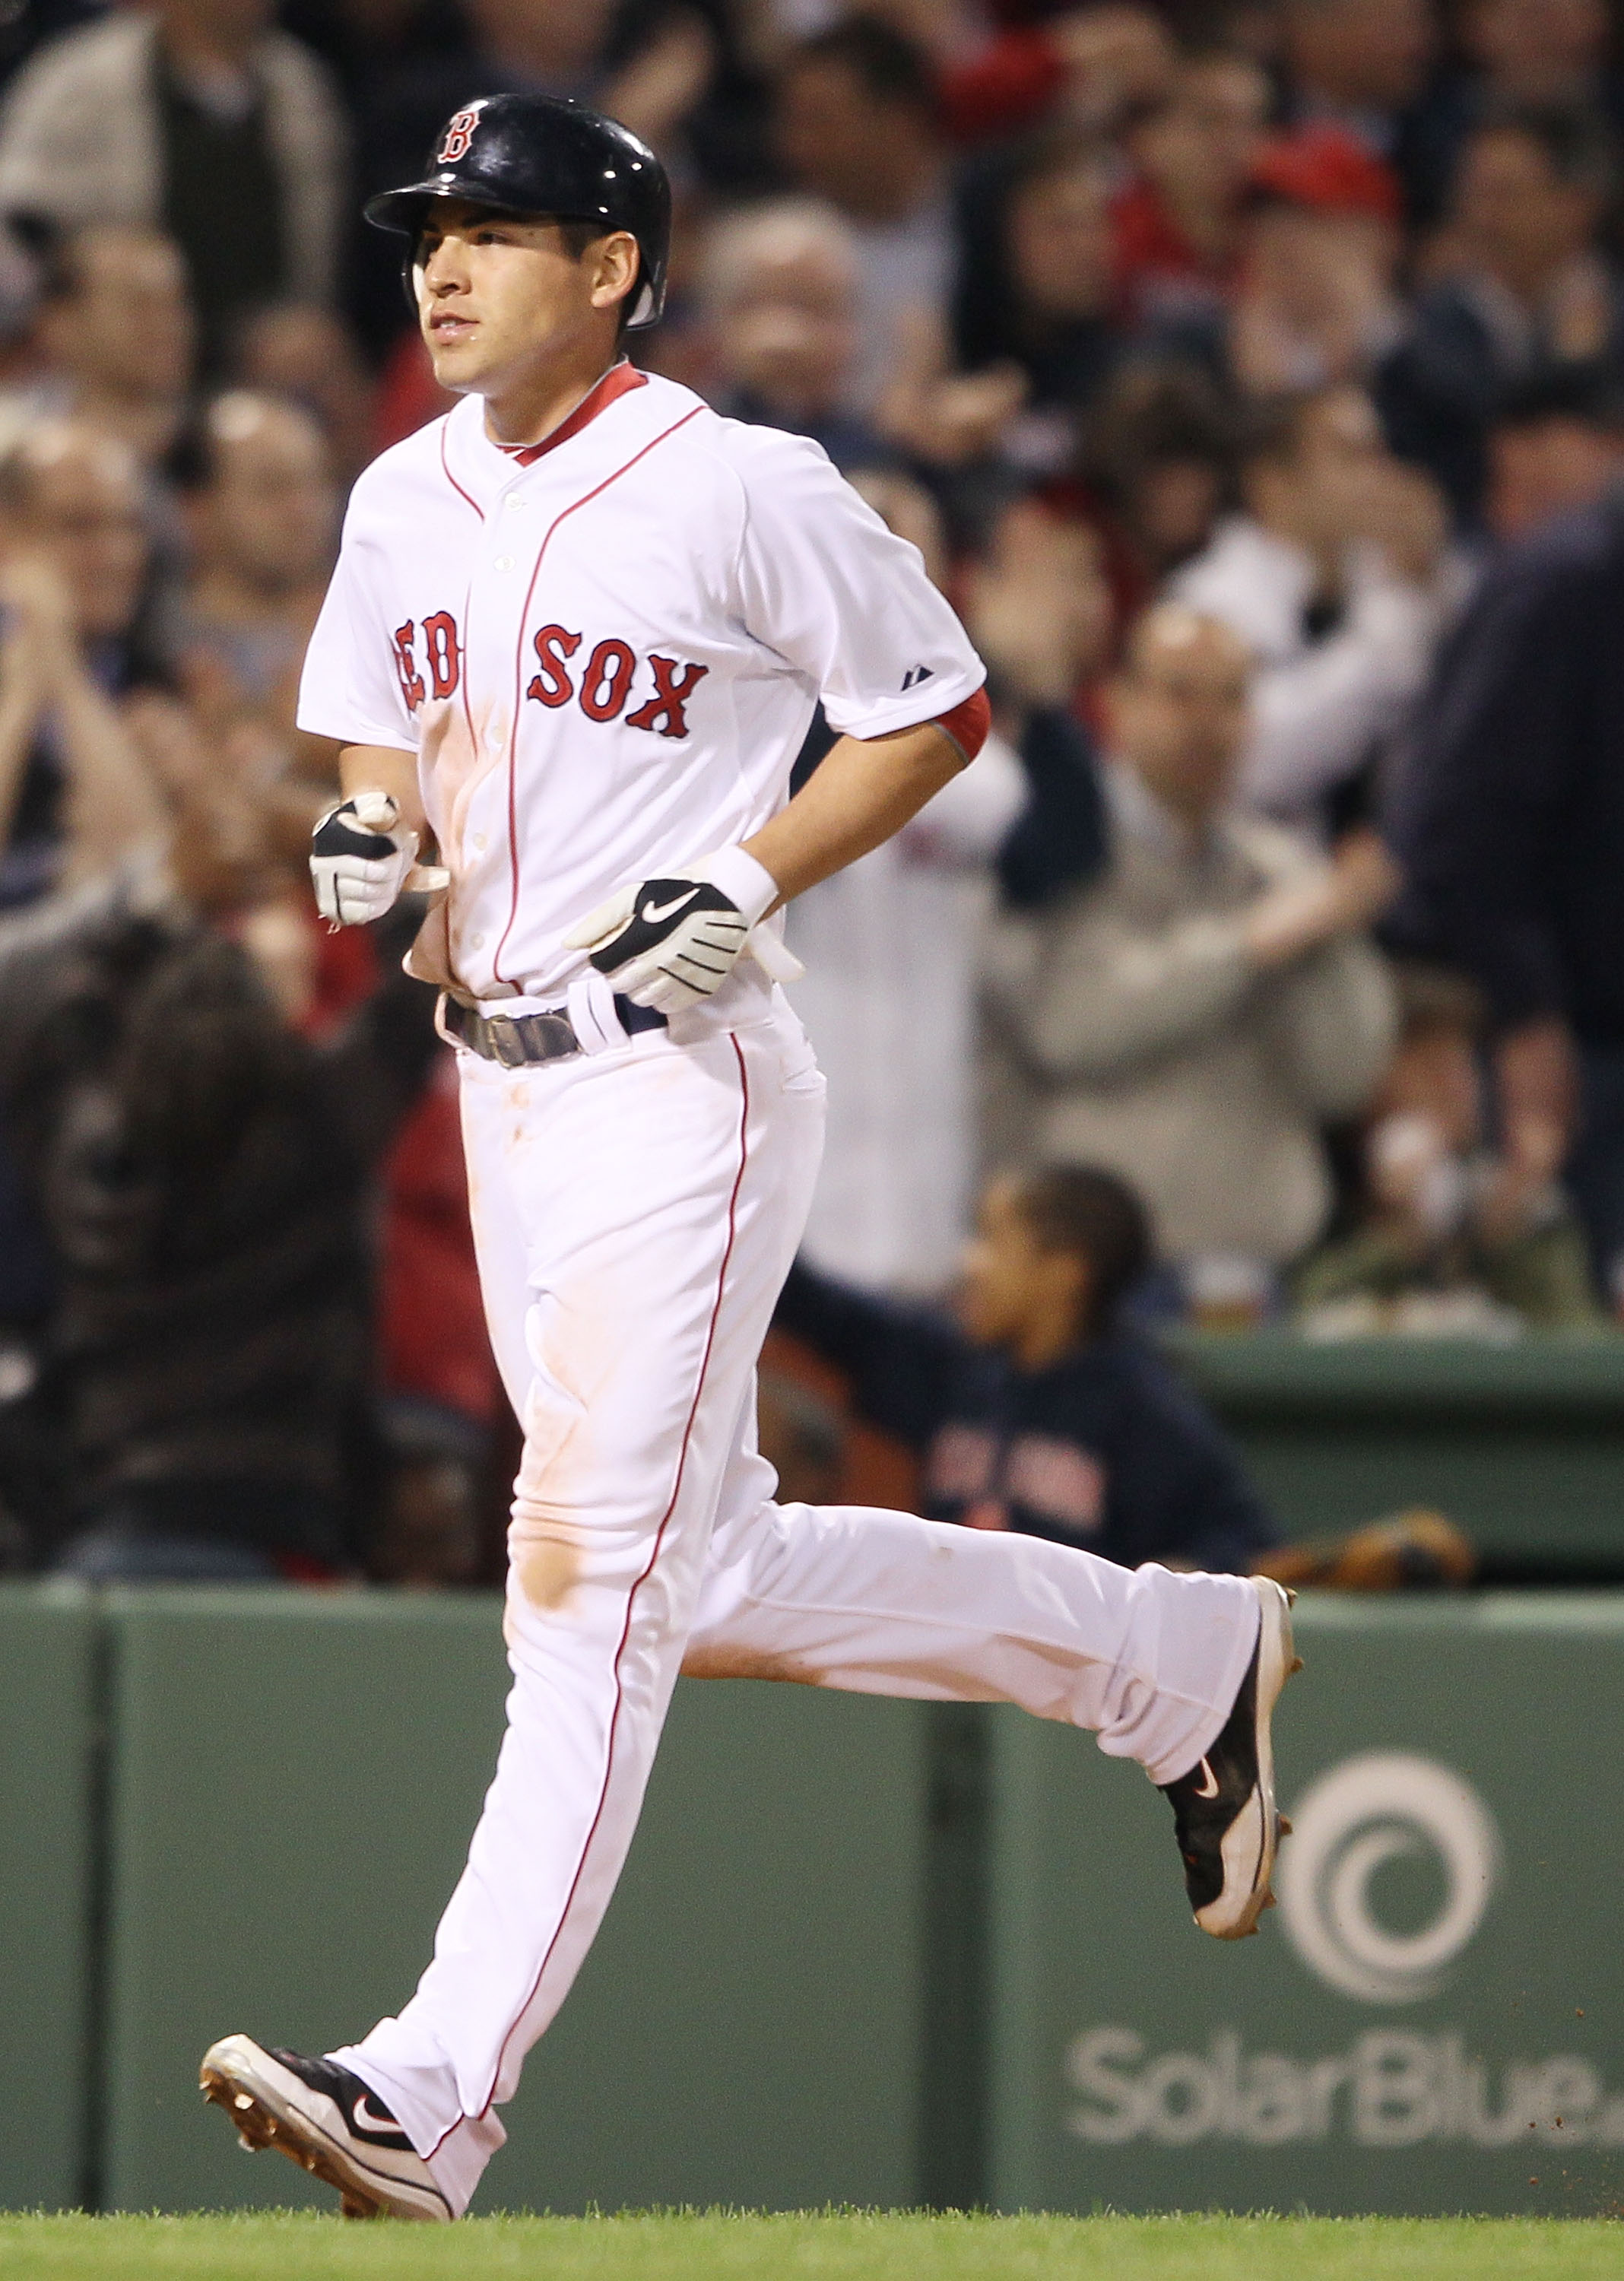 BOSTON - APRIL 06:  Jacoby Ellsbury #2 of the Boston Red Sox heads for home after teammate Victor Martinez hit a two run homer in the third inning against the New York Yankees on April 6, 2010 at Fenway Park in Boston, Massachusetts.  (Photo by Elsa/Getty